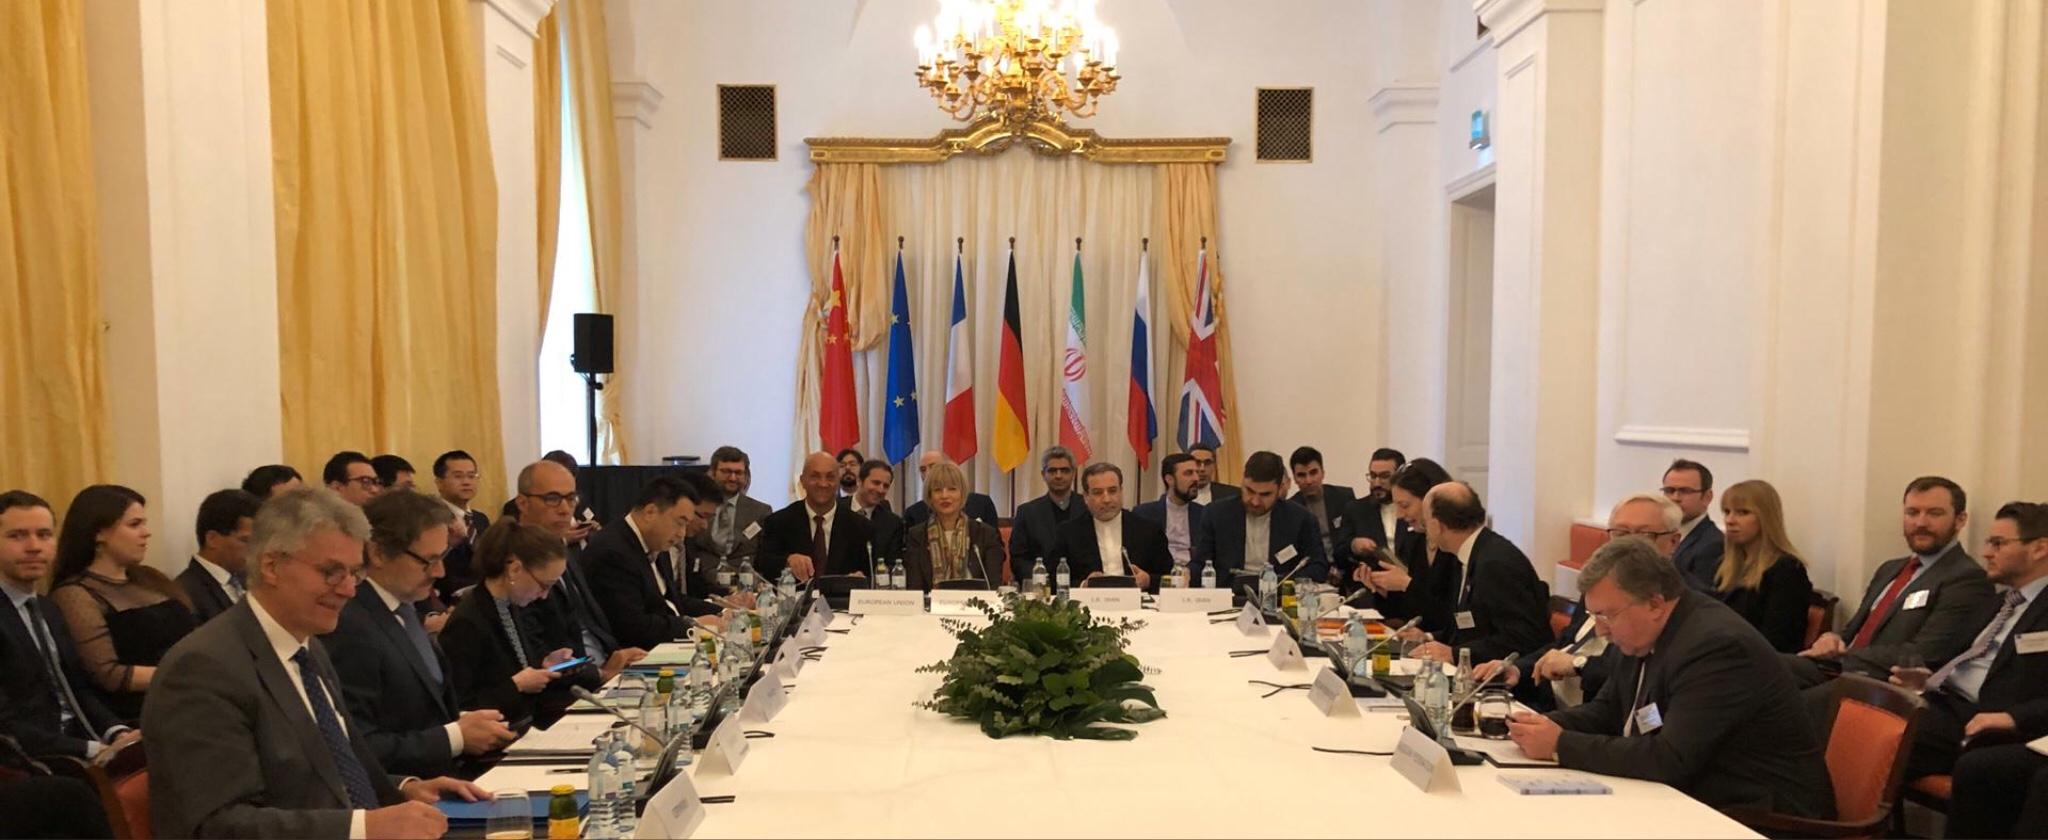 JCPOA: diplomats reiterate strong support to non-proliferation